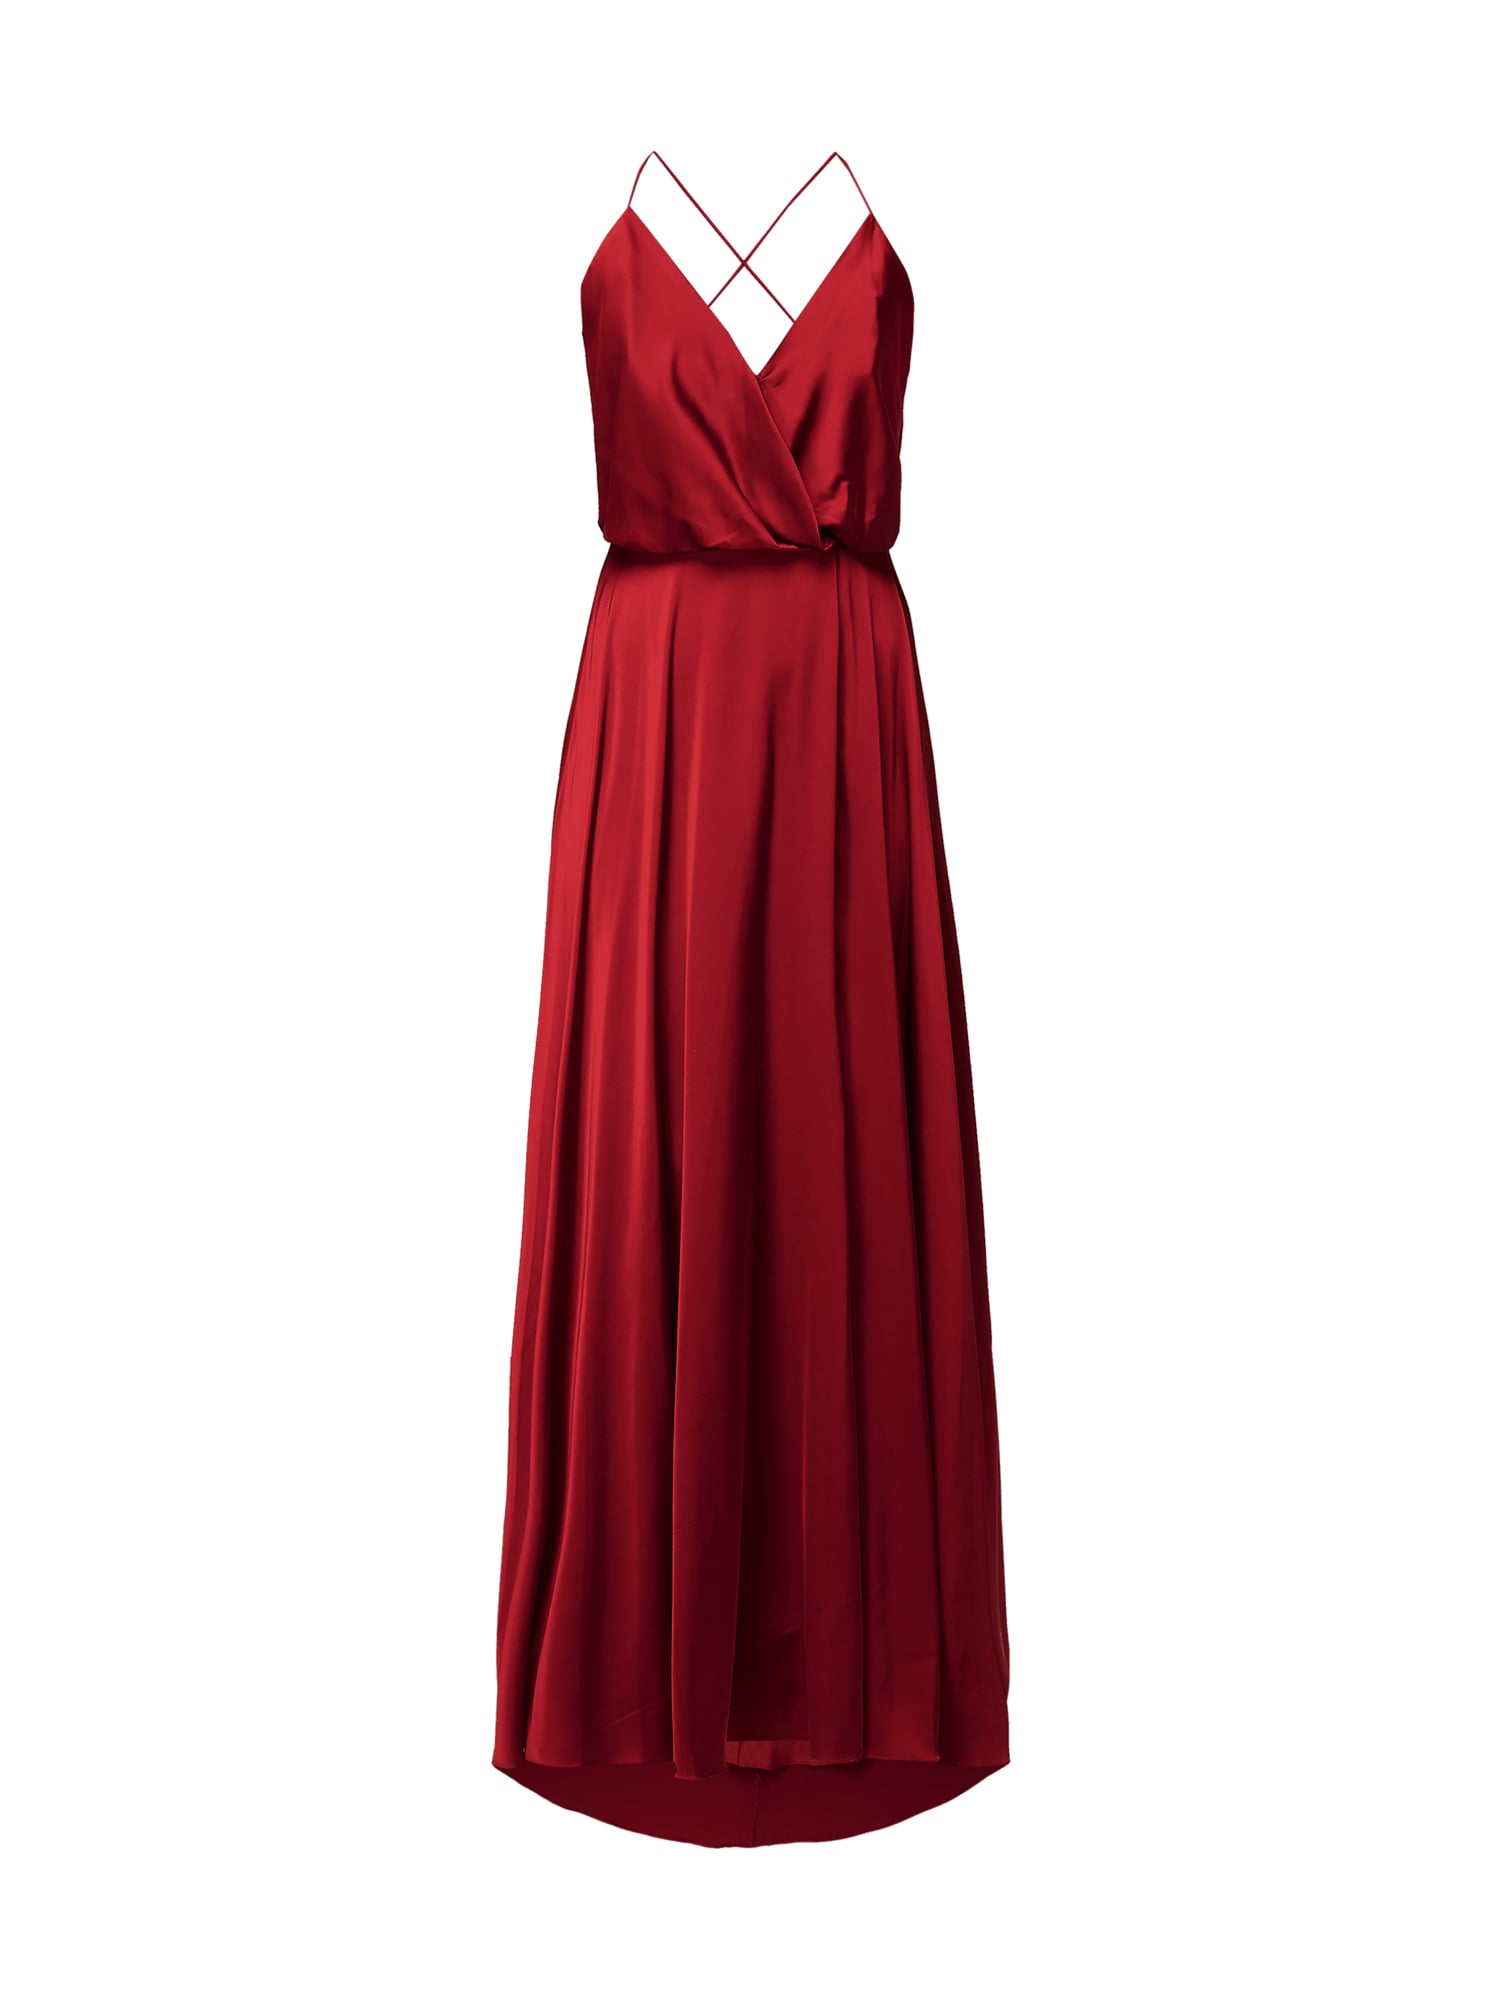 UNIQUE Abendkleid aus Satin in Rot online kaufen (15) ▷ P&C Online Shop